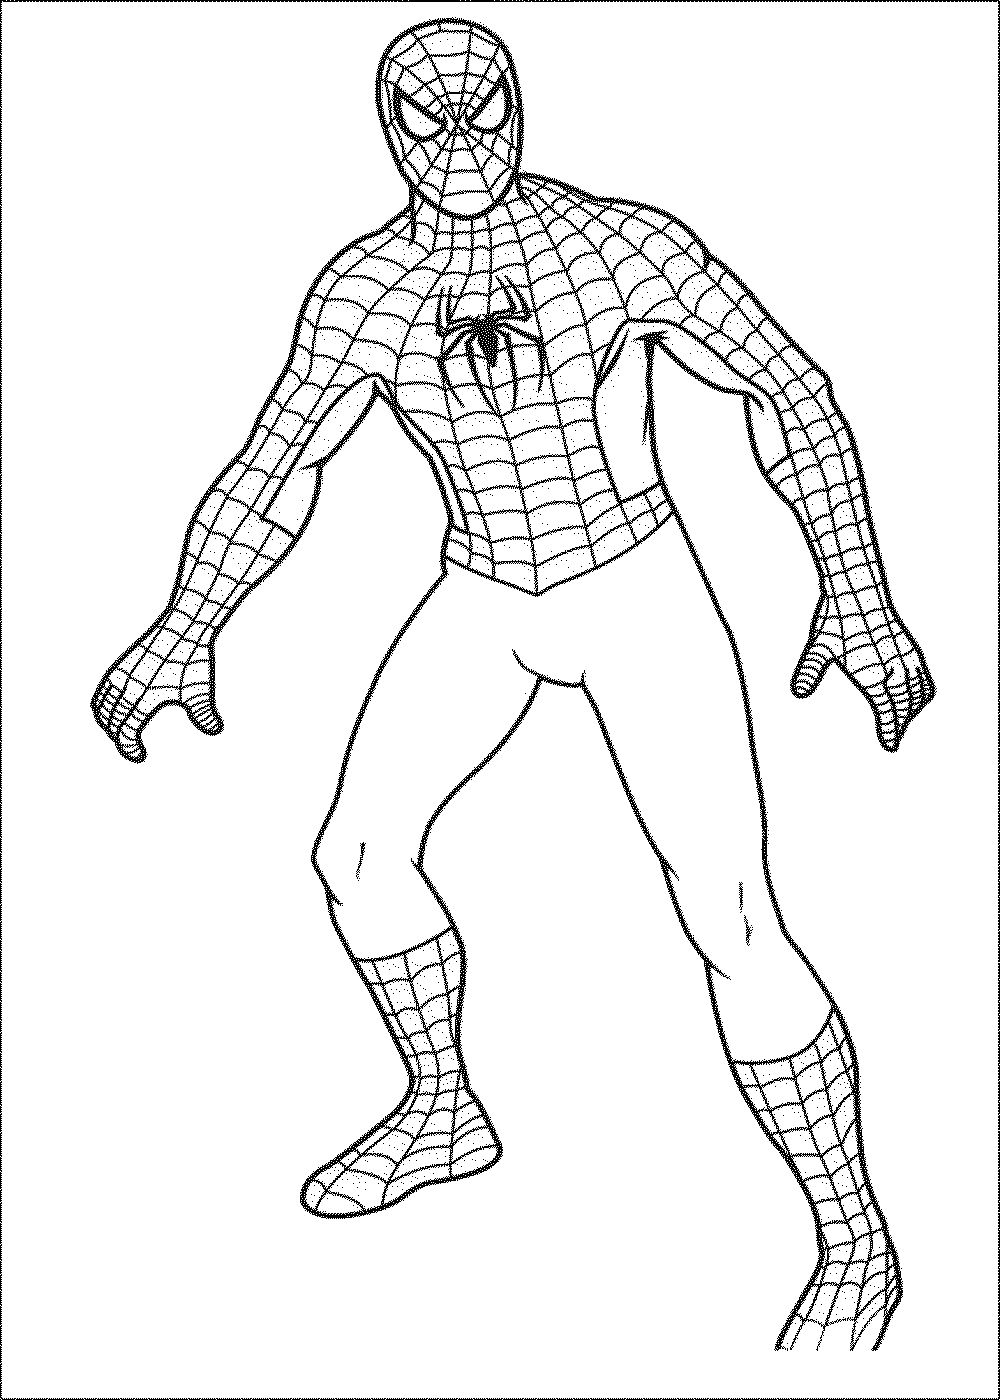 spiderman coloring pages easy simple spiderman coloring pages at getdrawings free download pages easy coloring spiderman